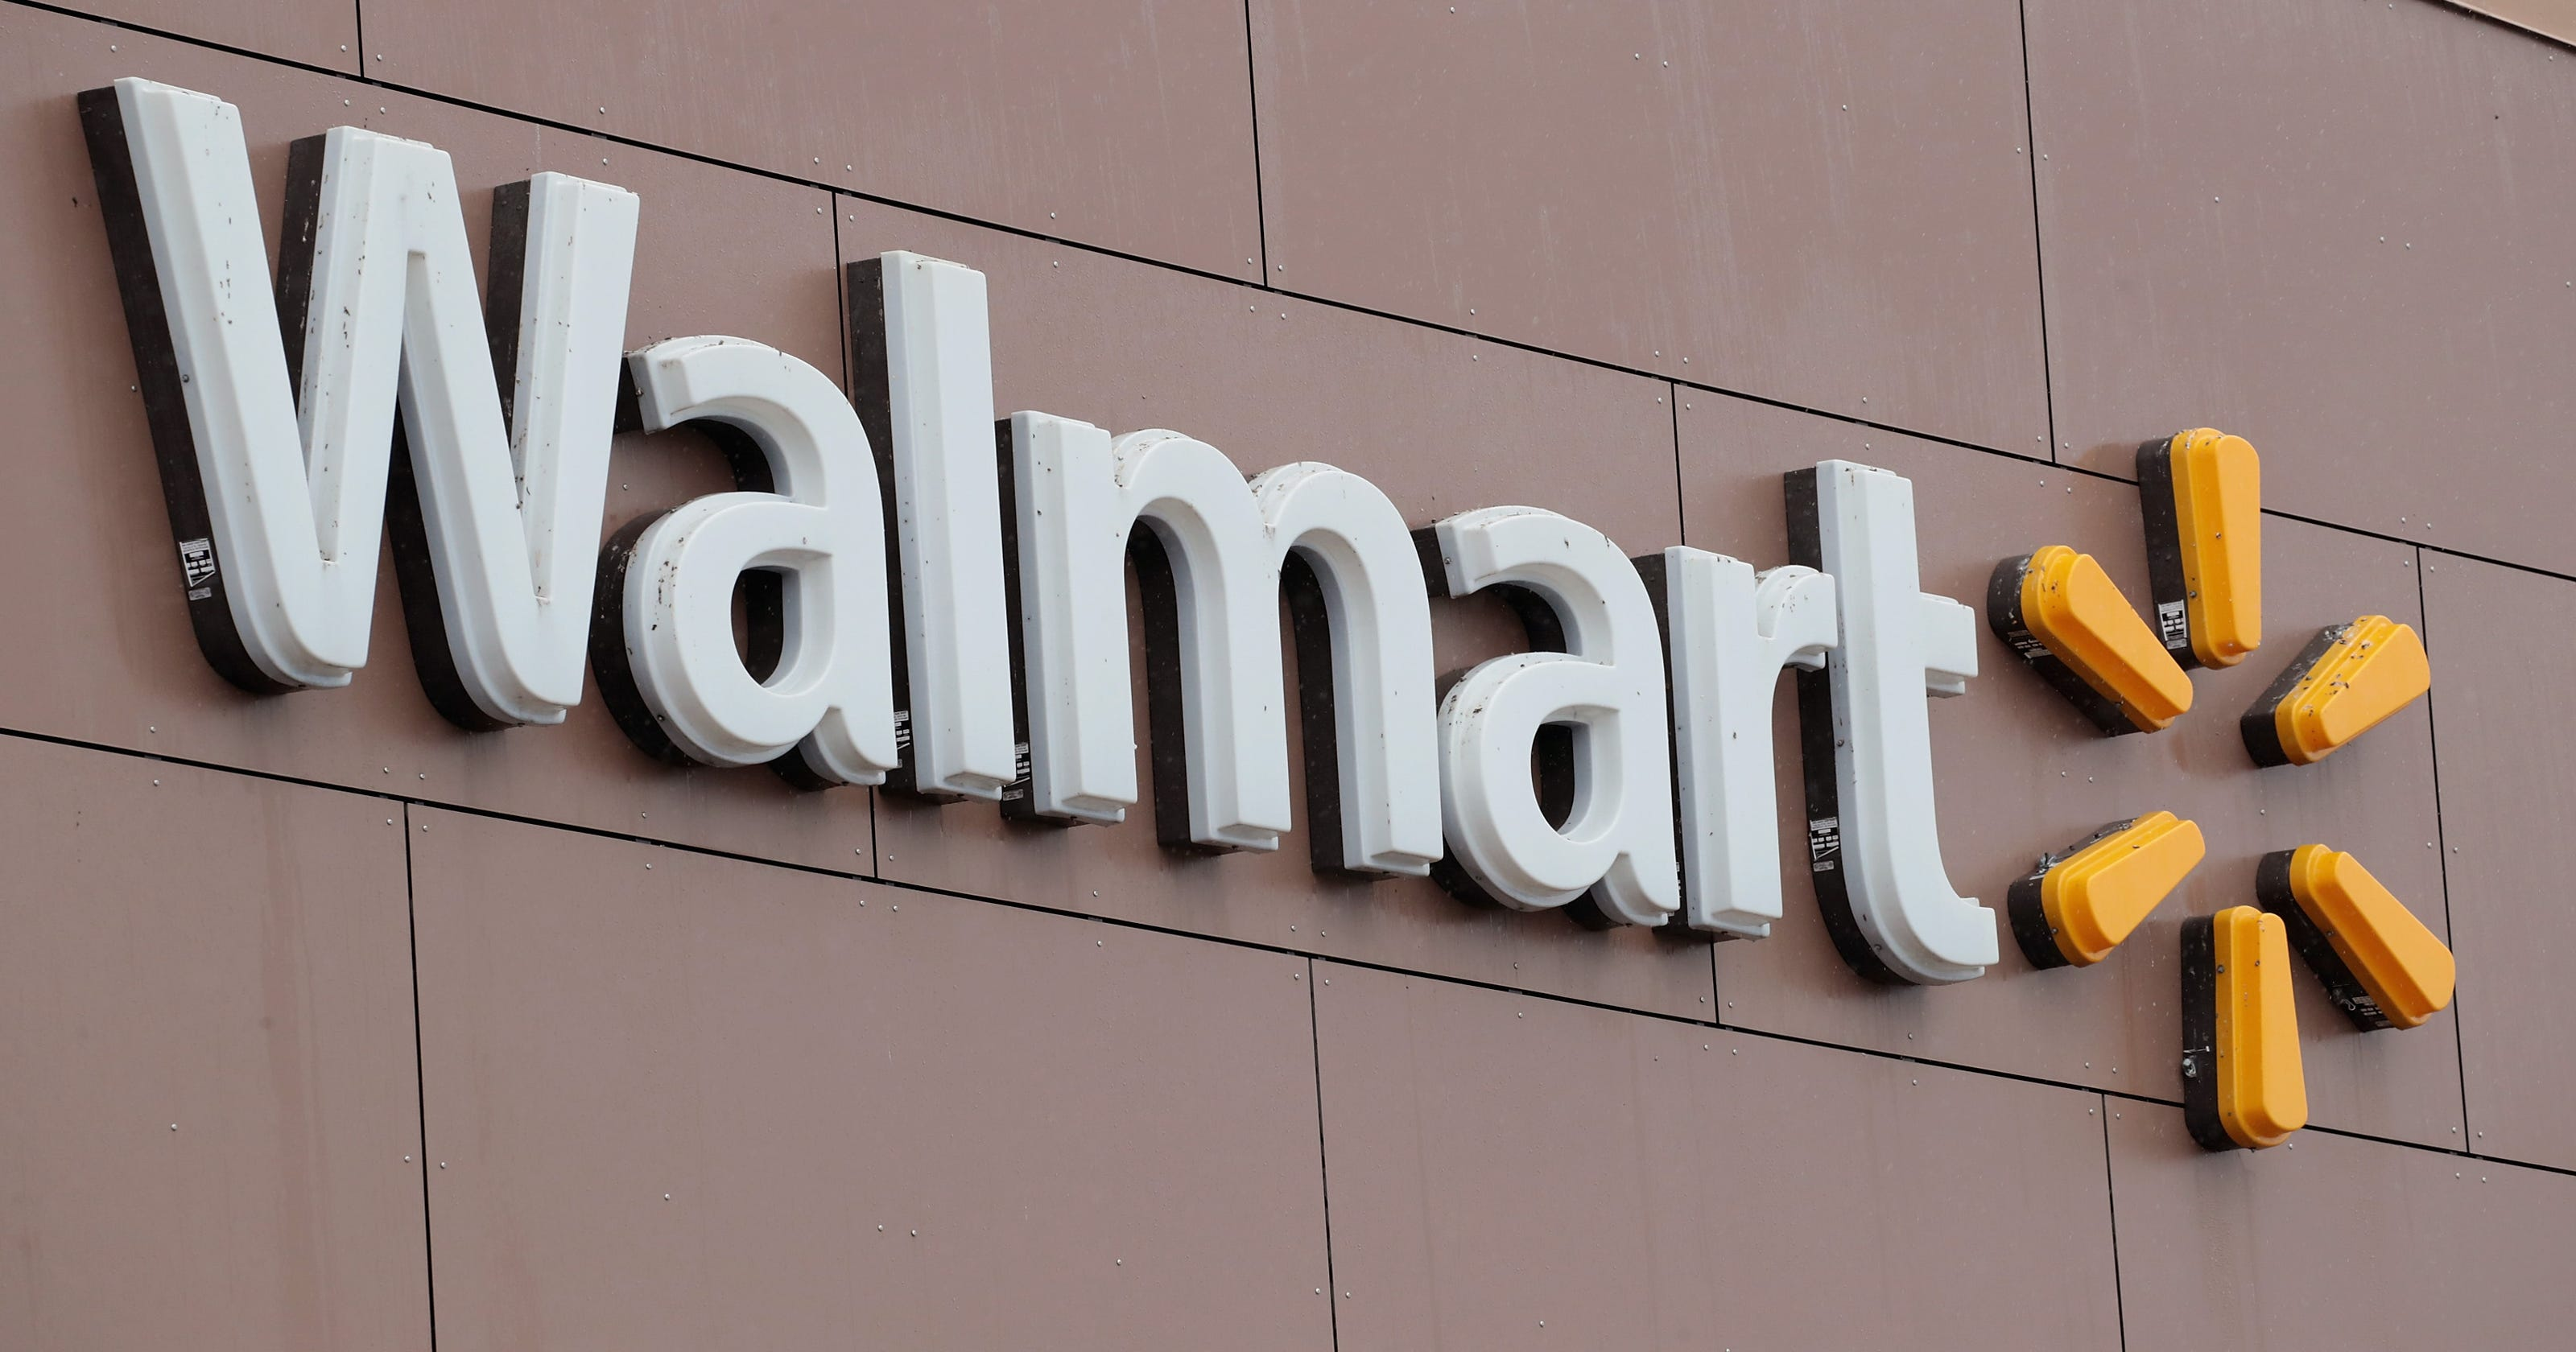 Crime of the week: Police investigate shoplifting at Walmart